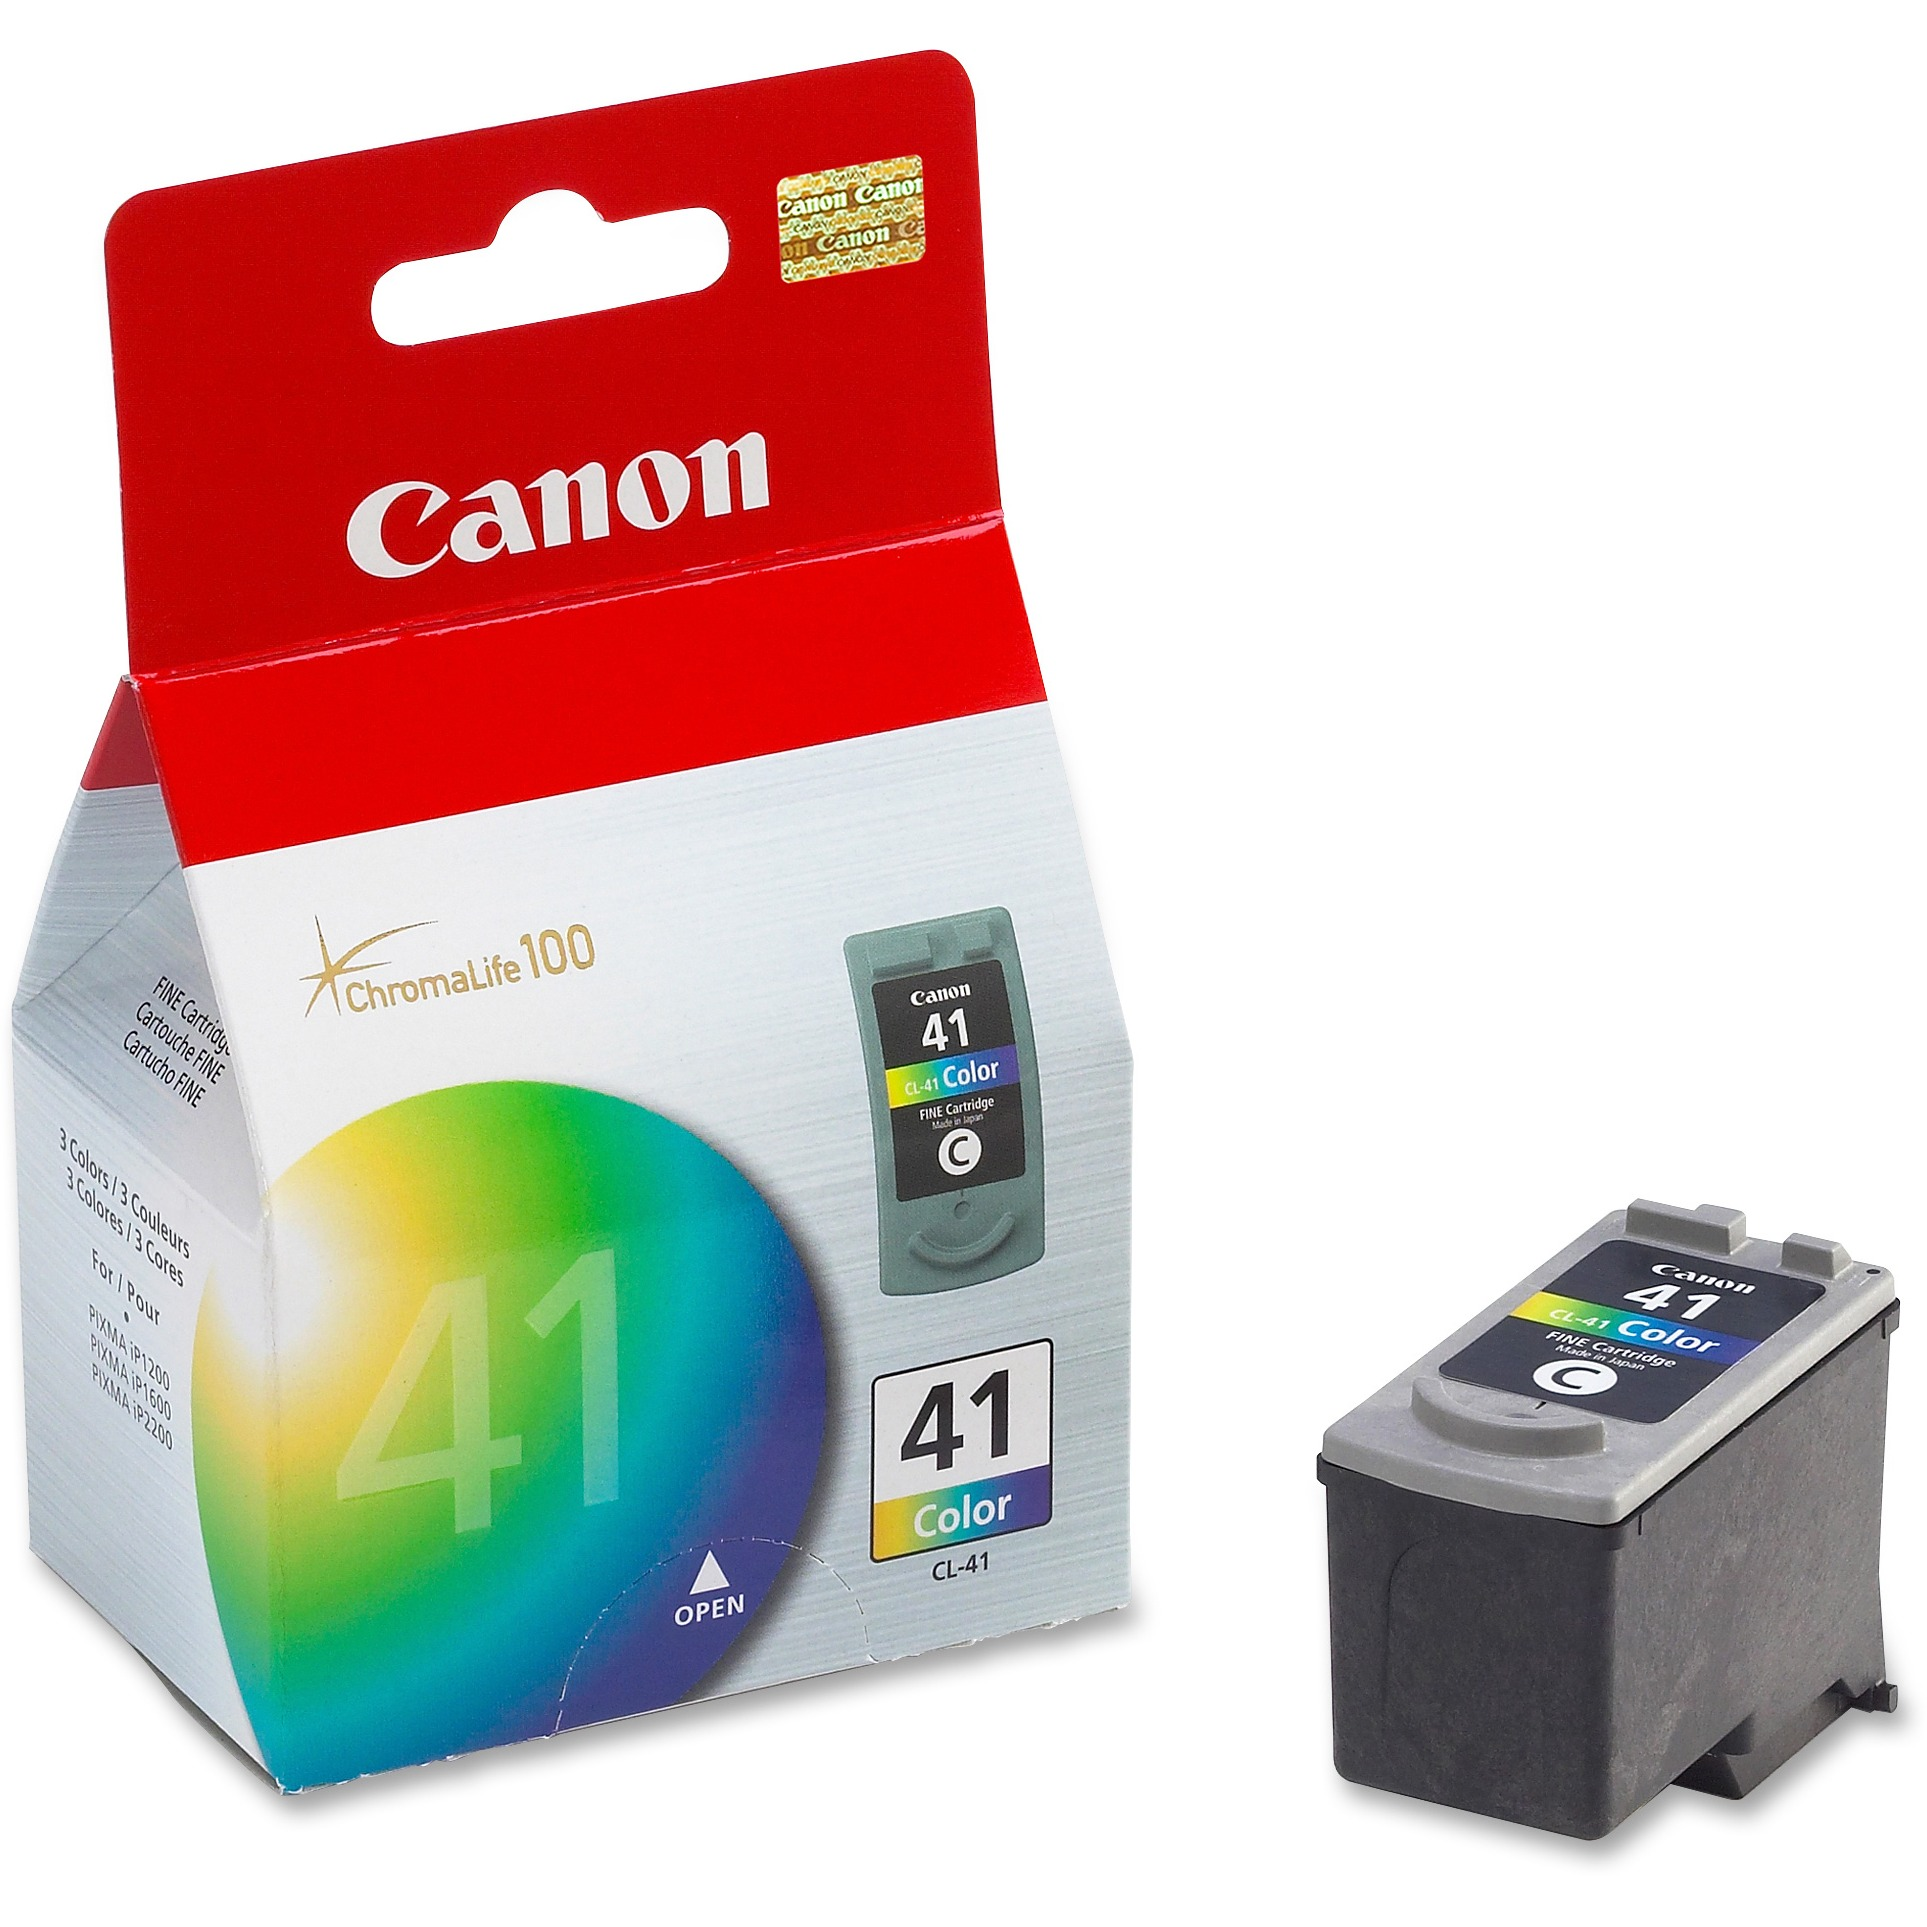 Canon CL-41 Original Ink Cartridge, 1 Each (Quantity)